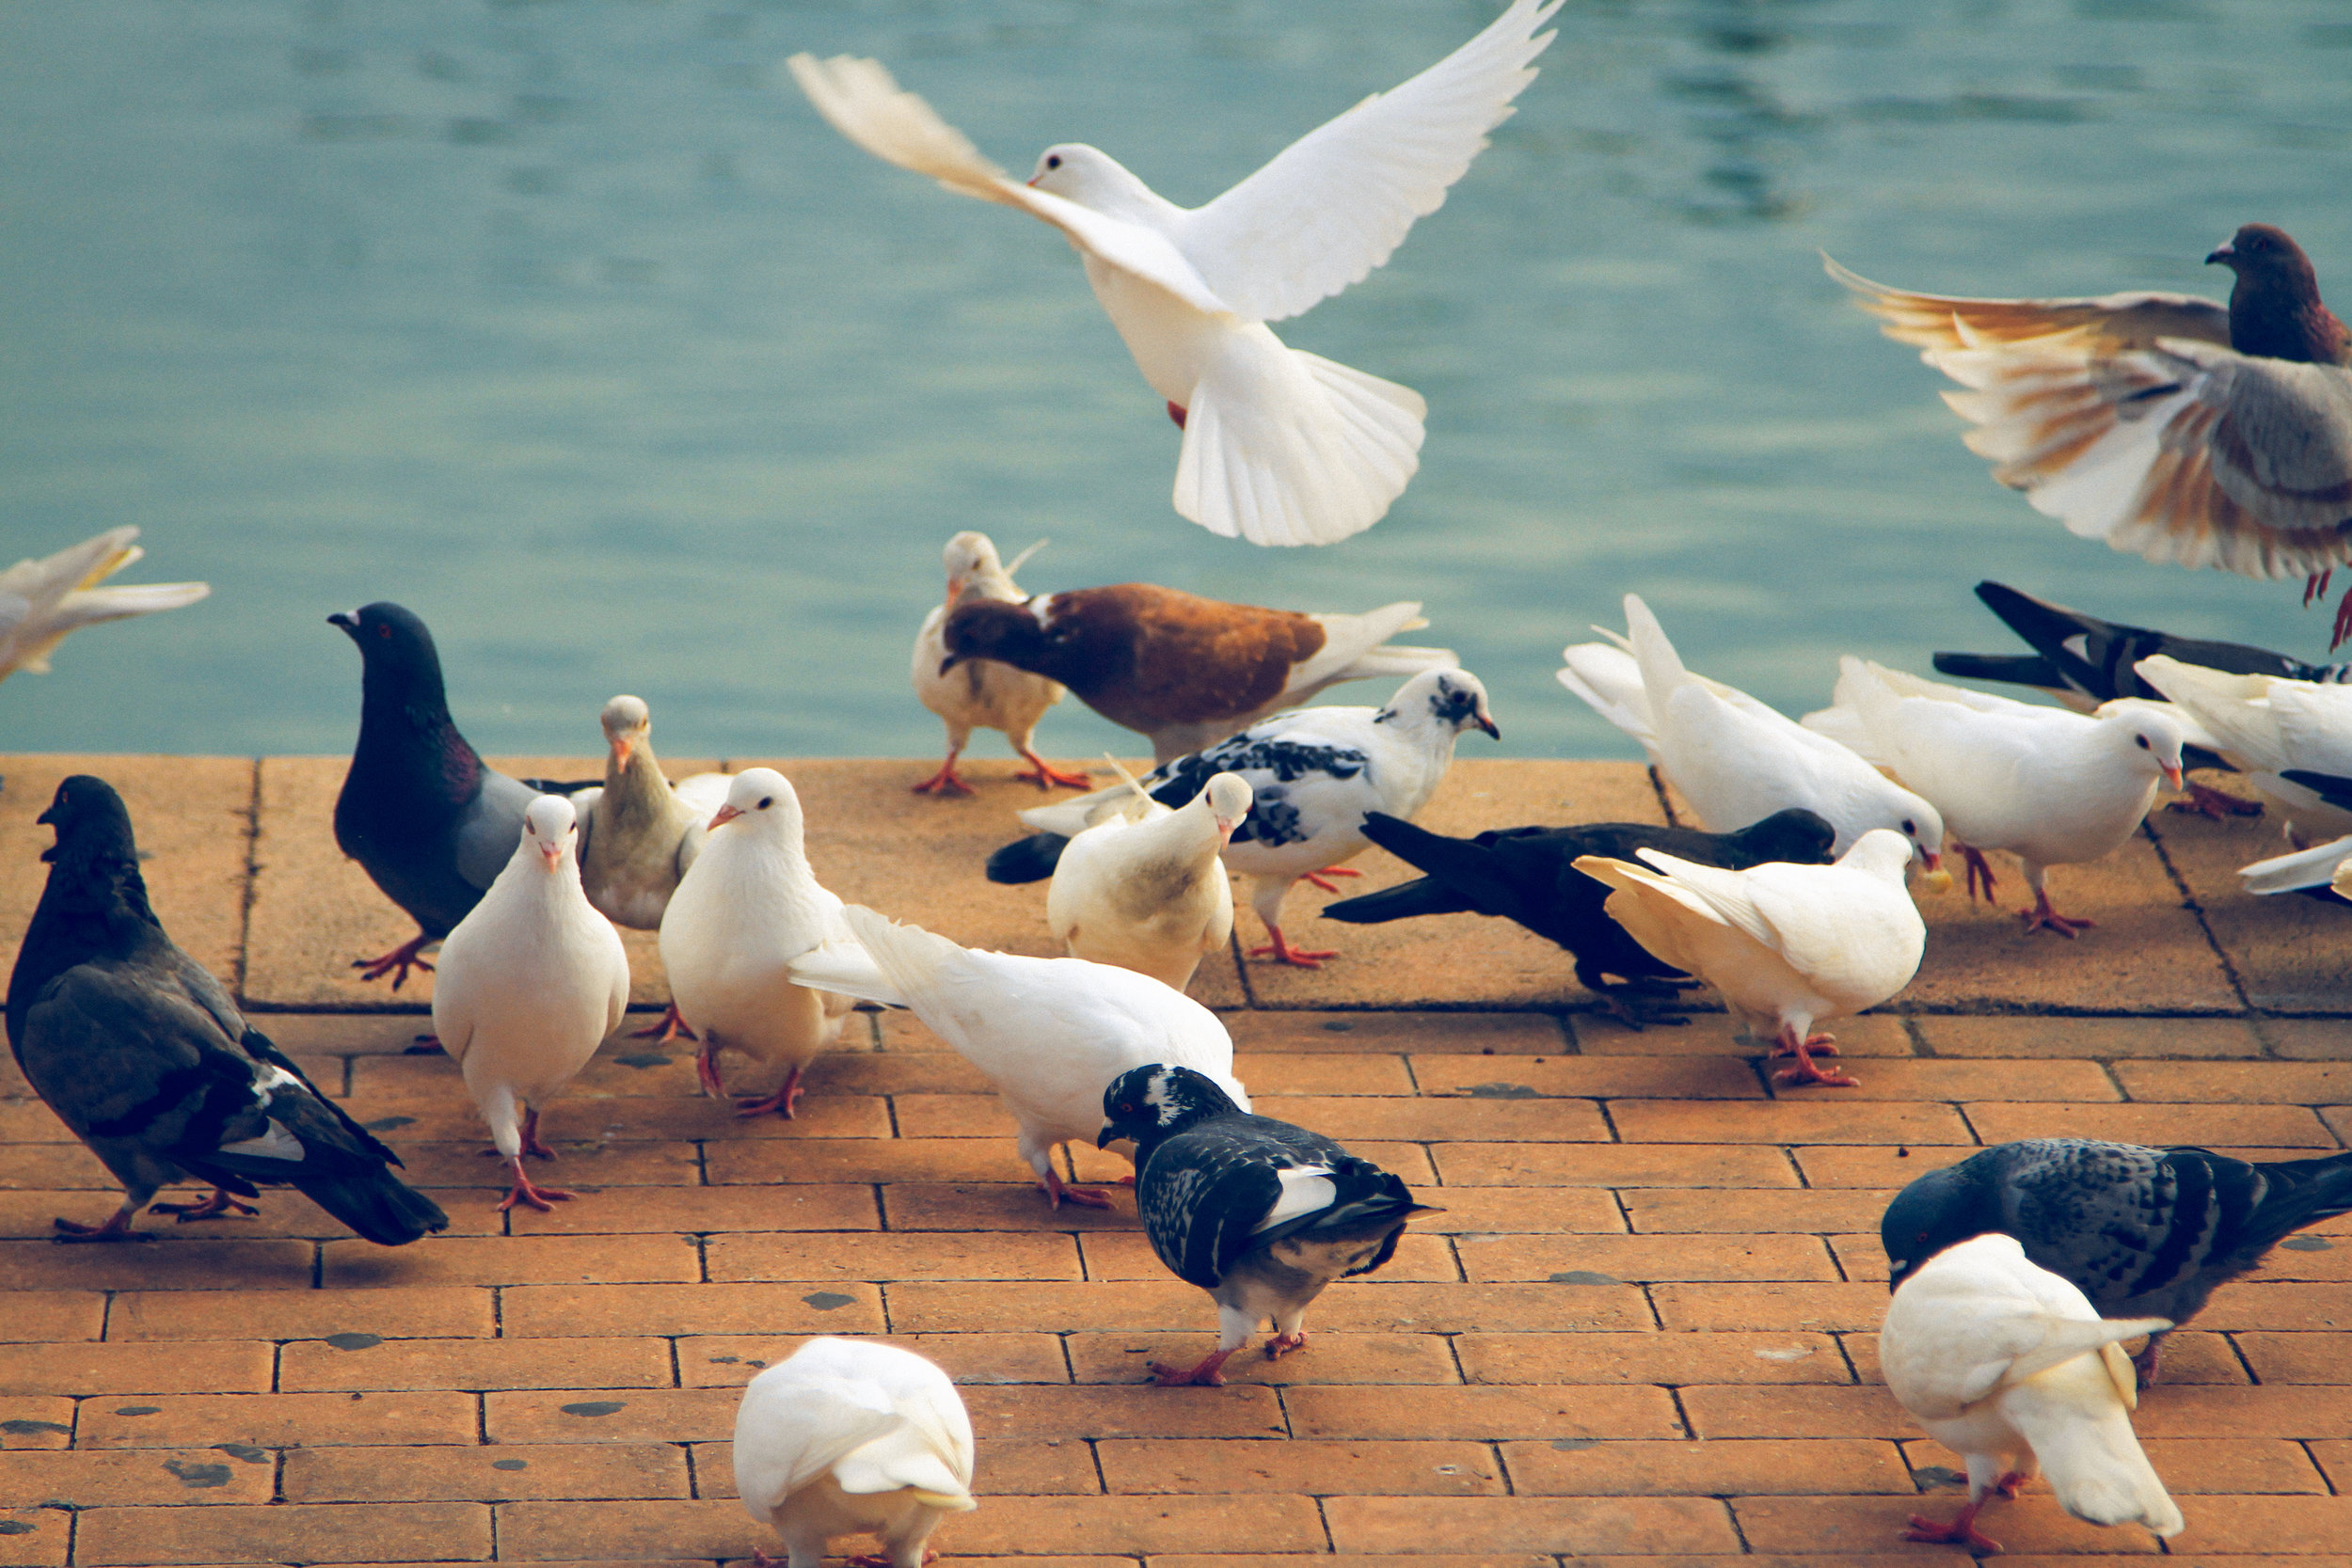 Pigeons gathering by water